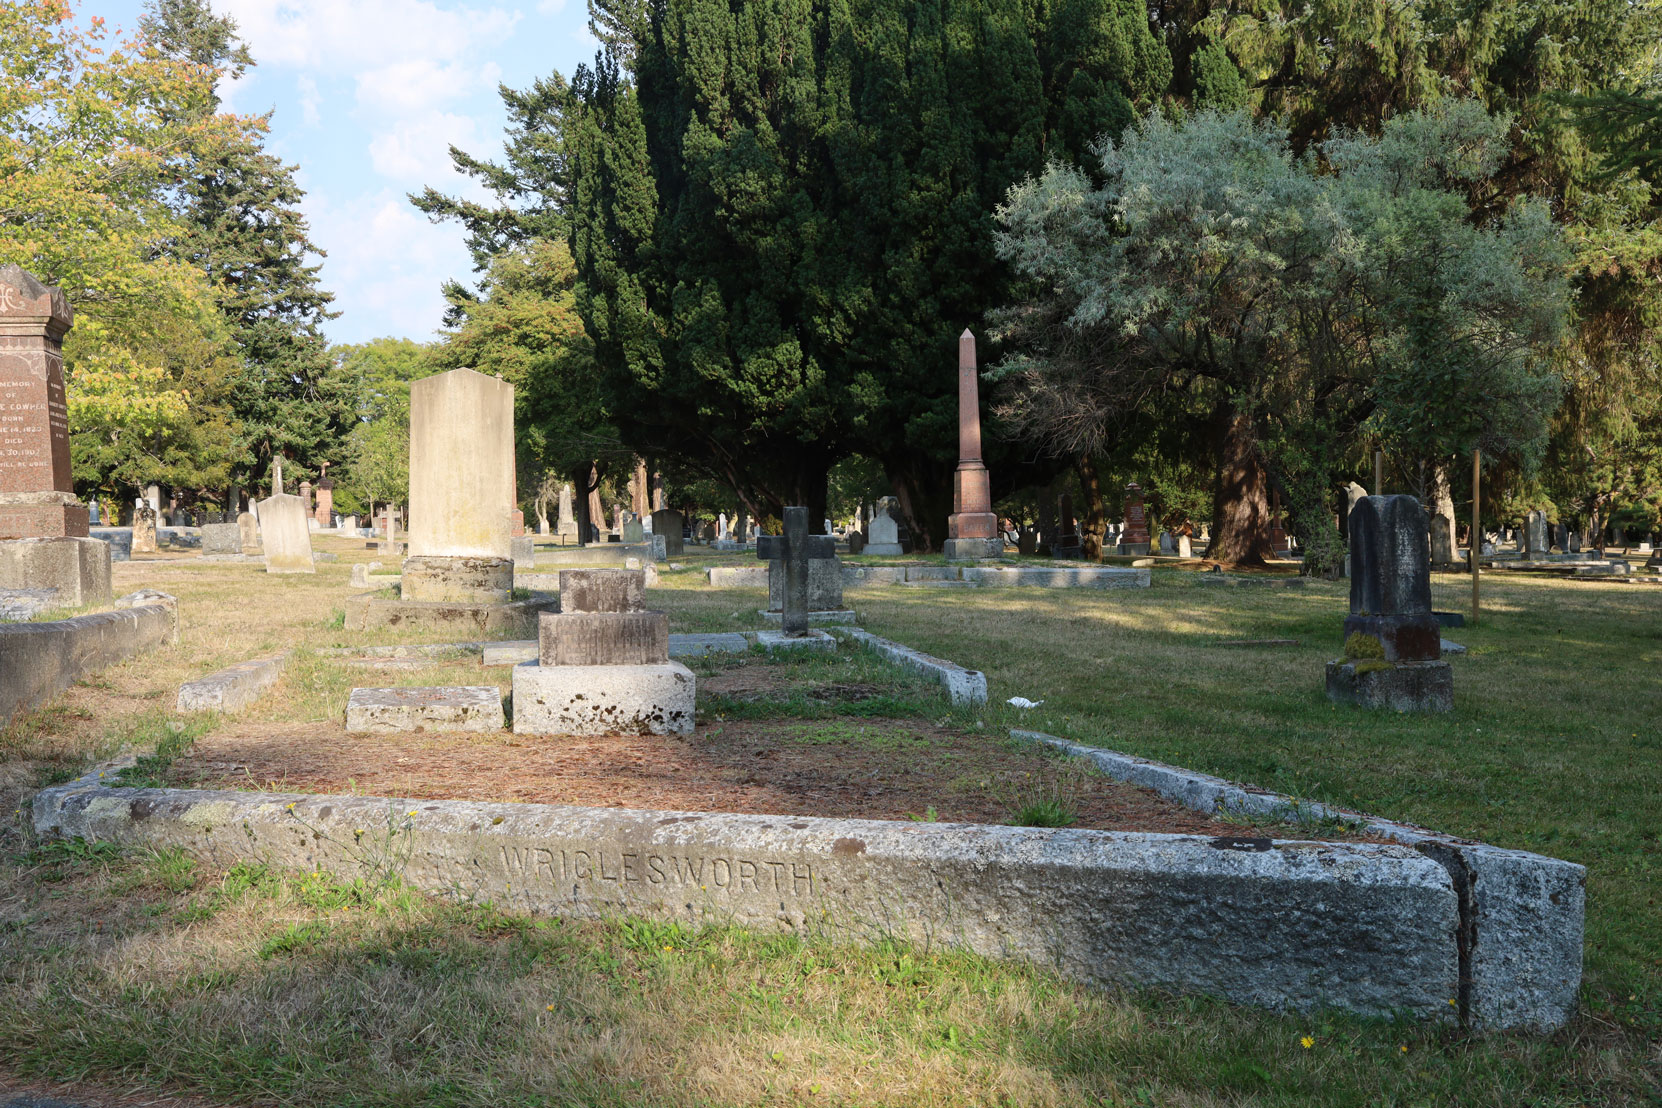 The Wriglesworth family grave in Ross Bay Cemetery, Victoria, BC. Joseph Wrigglesworth and Charles Wrigglesworth are buried here. (Photo: Mark Anderson)